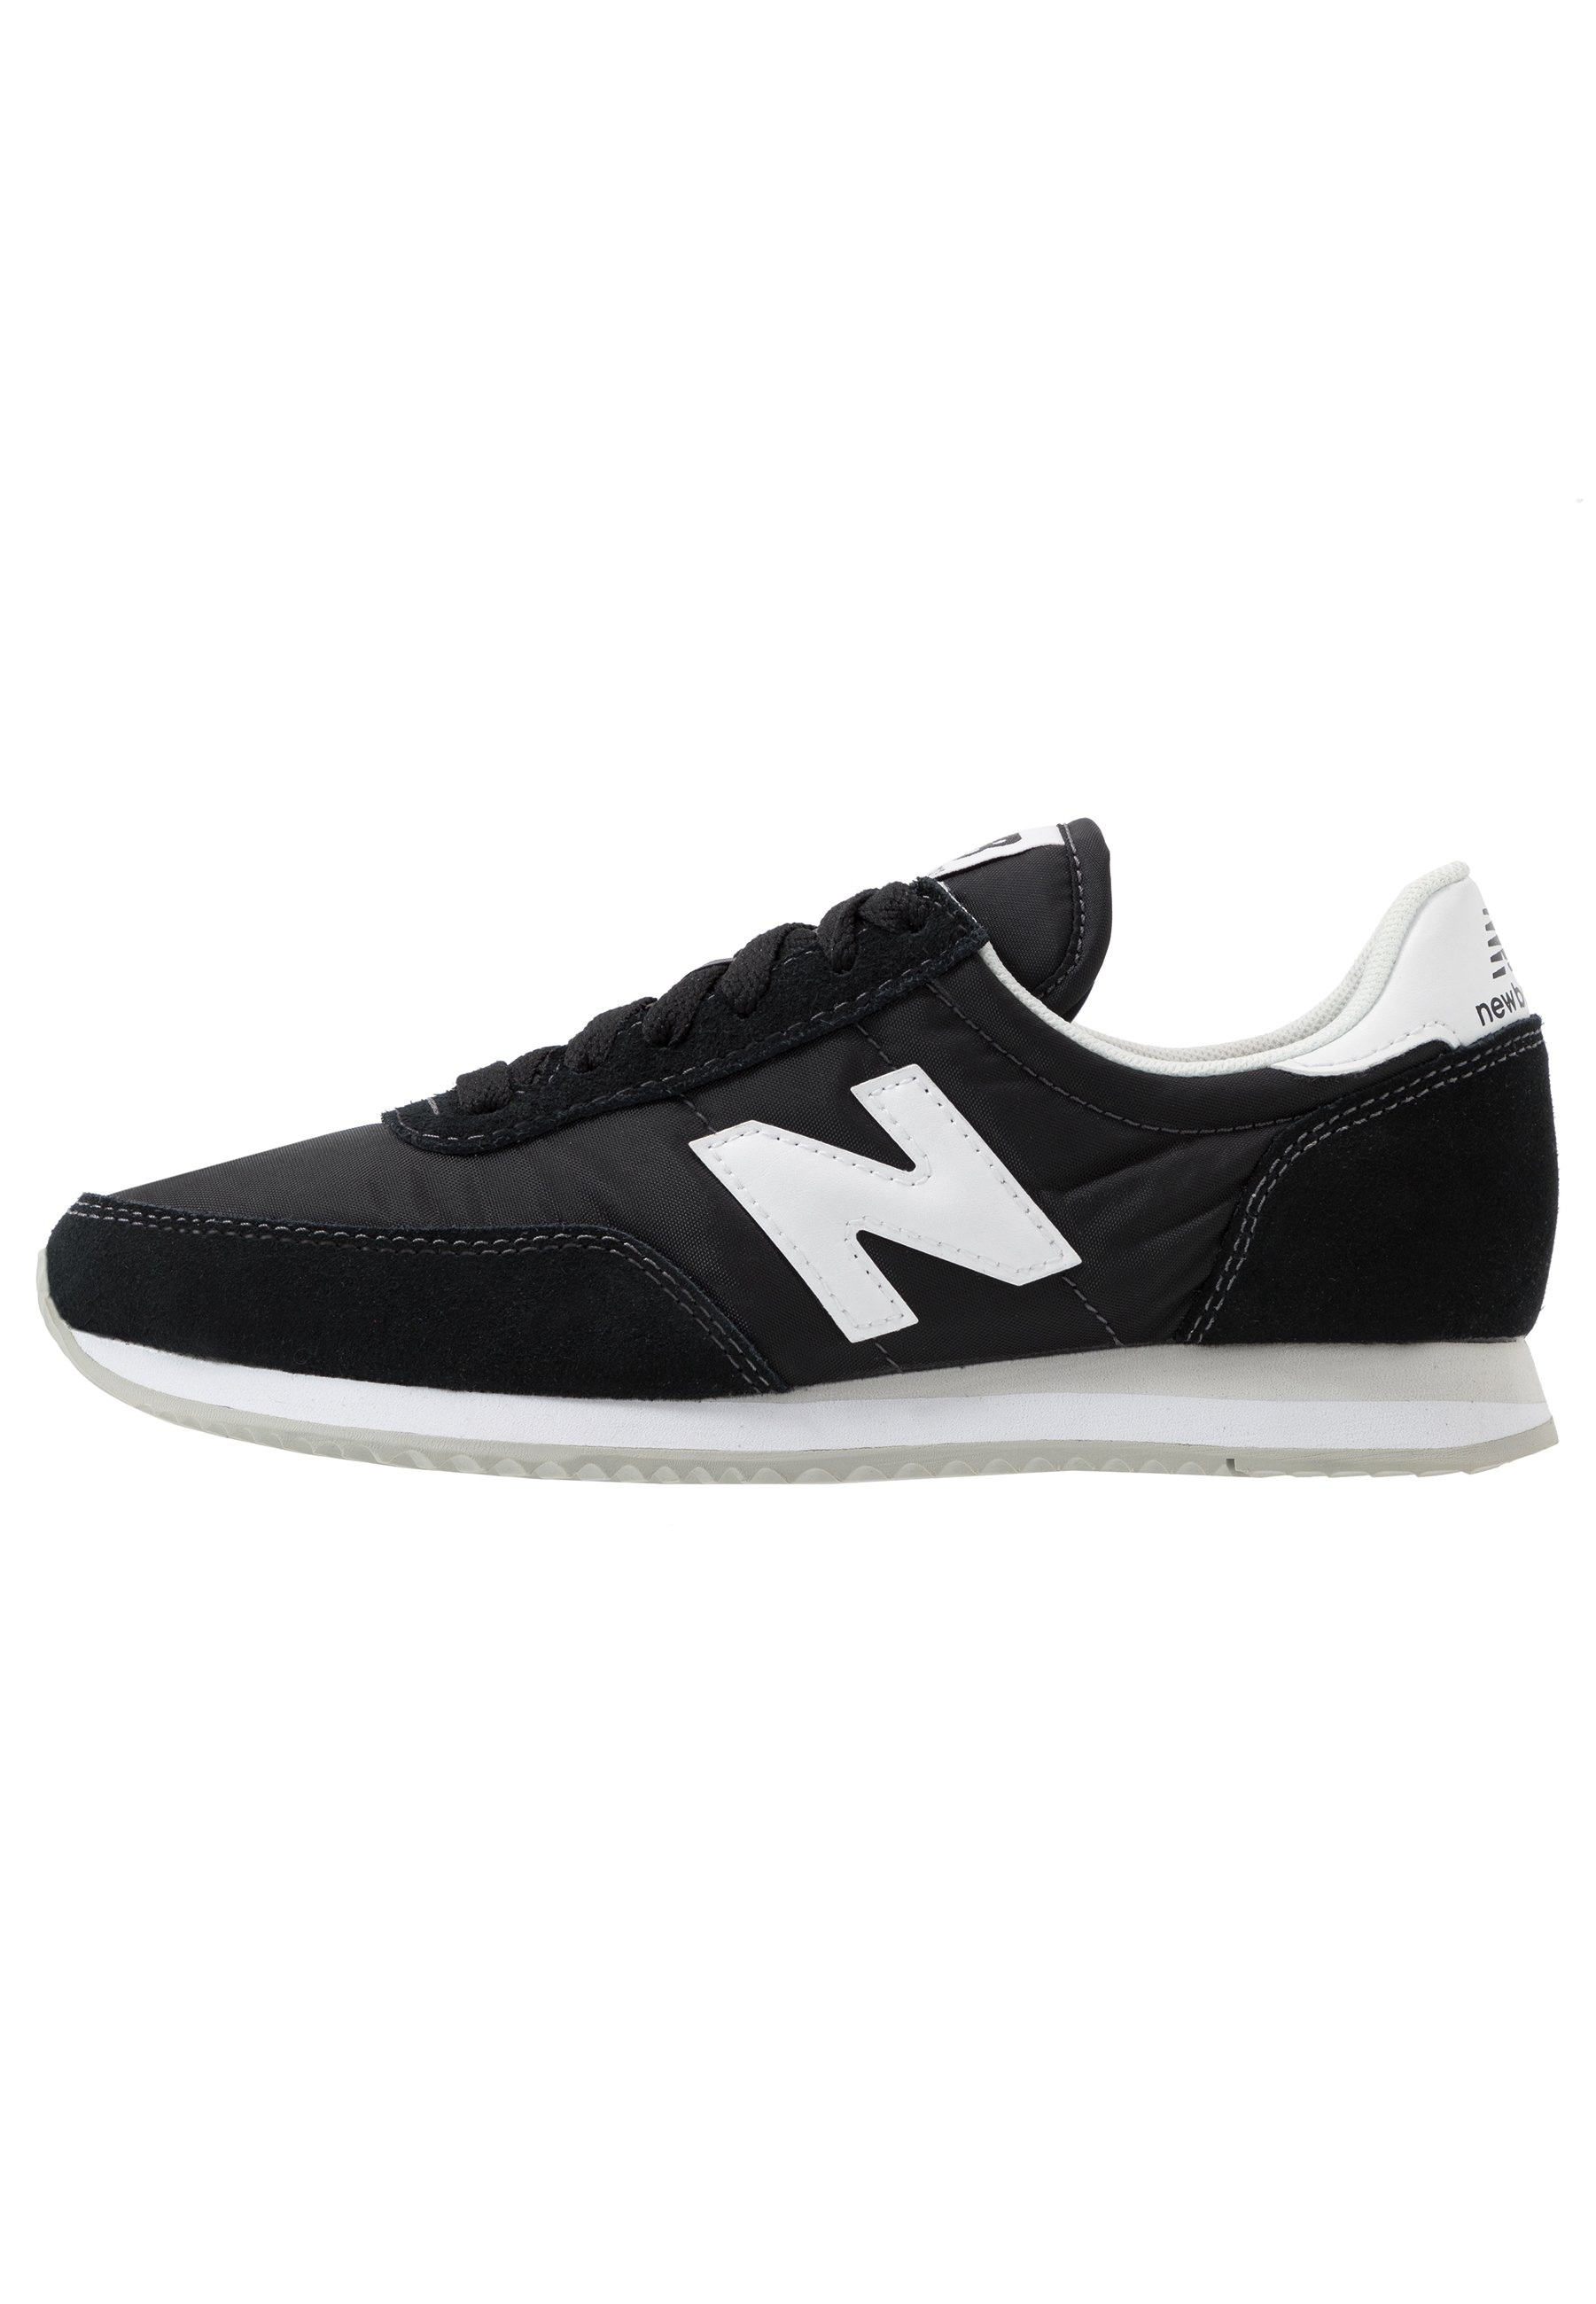 720 - Sneaker low - black/white